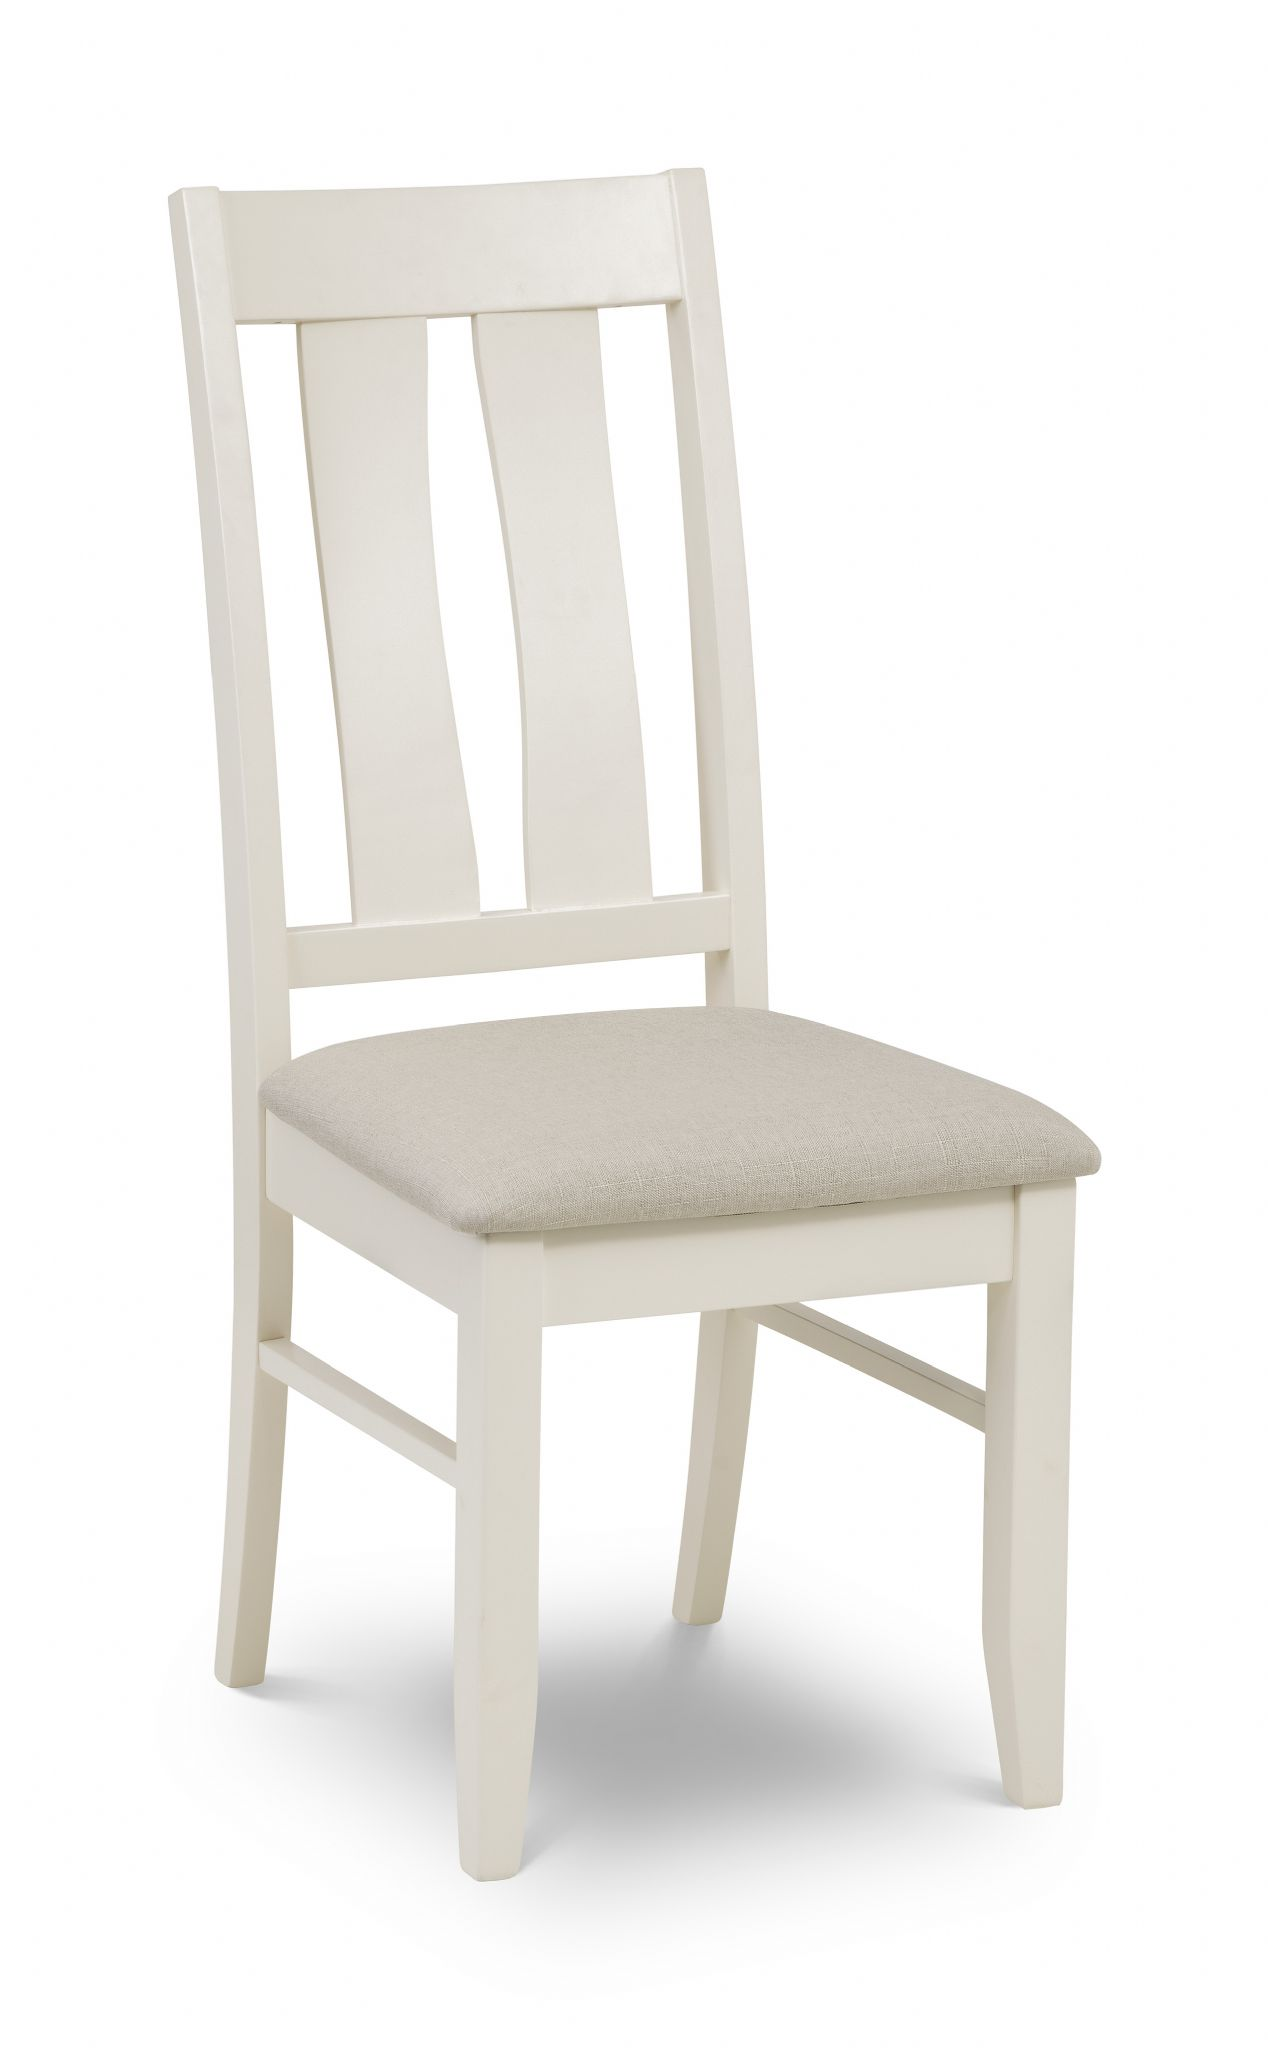 ivory dining chairs uk virtual reality chair marchena lacquered finished jb377